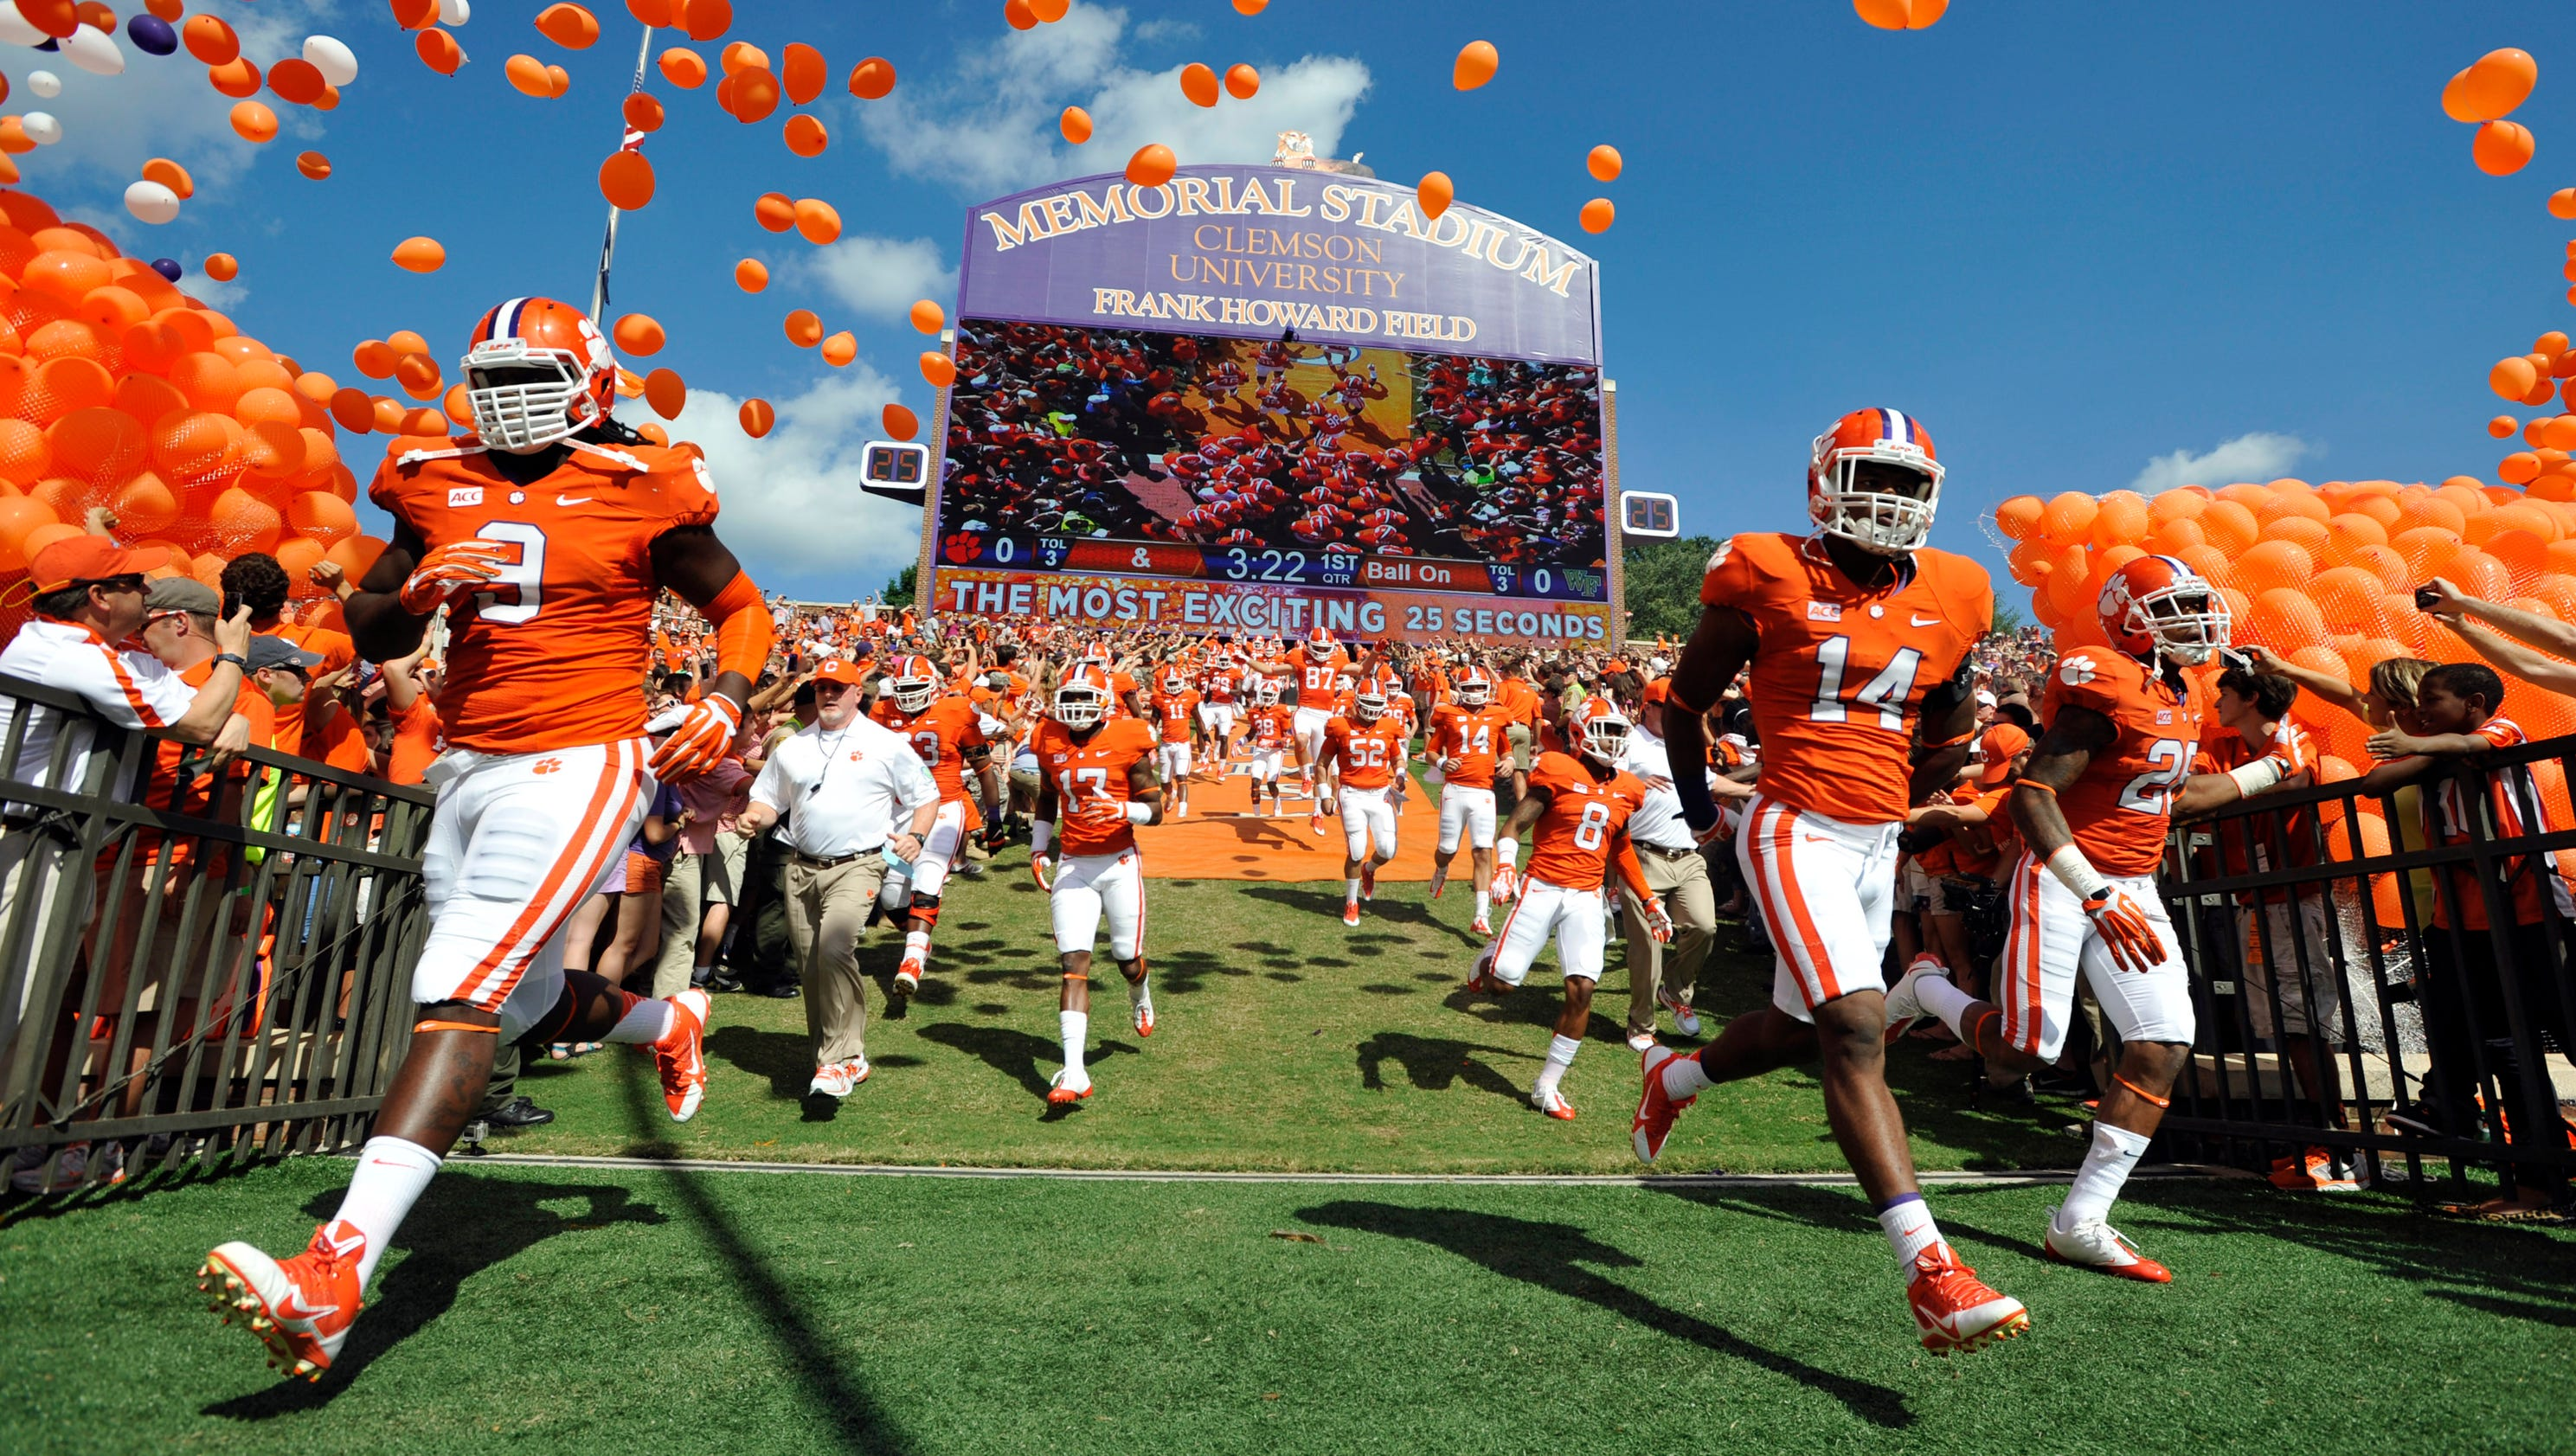 The 25 best college football stadiums in the country ...